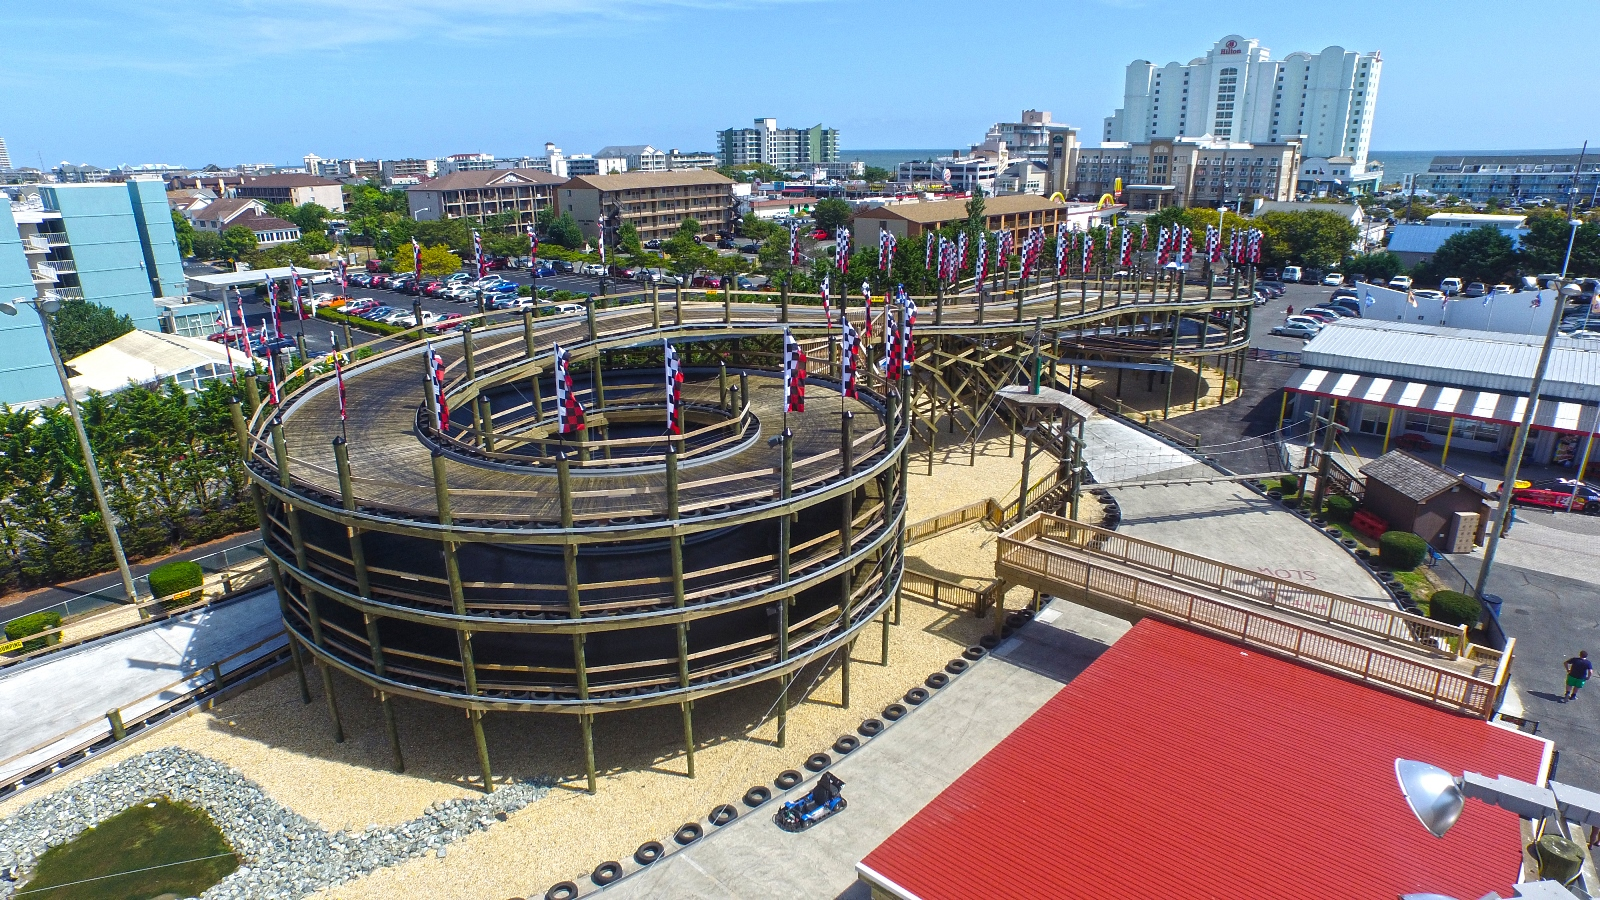 Top 10 Reasons To Visit Jolly Roger Parks In Ocean City Md